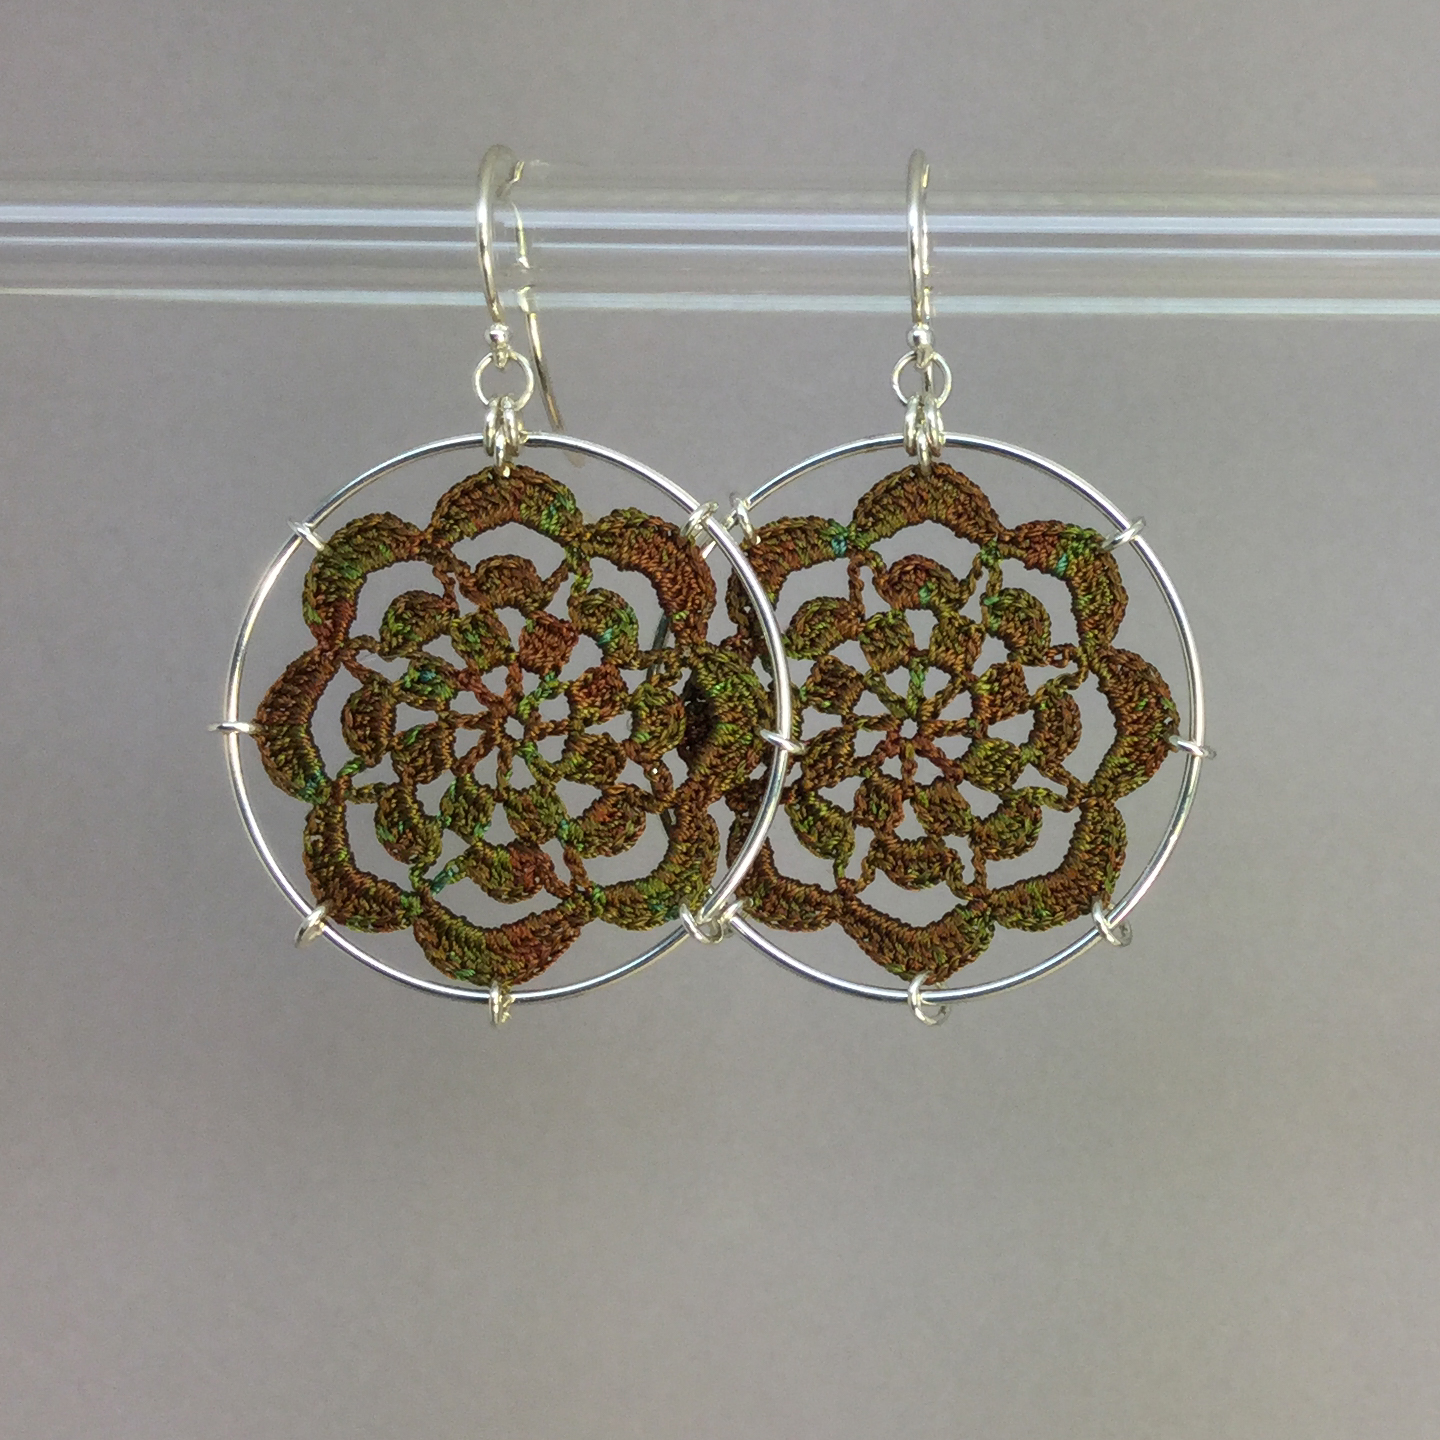 Serendipity earrings, silver, camo thread